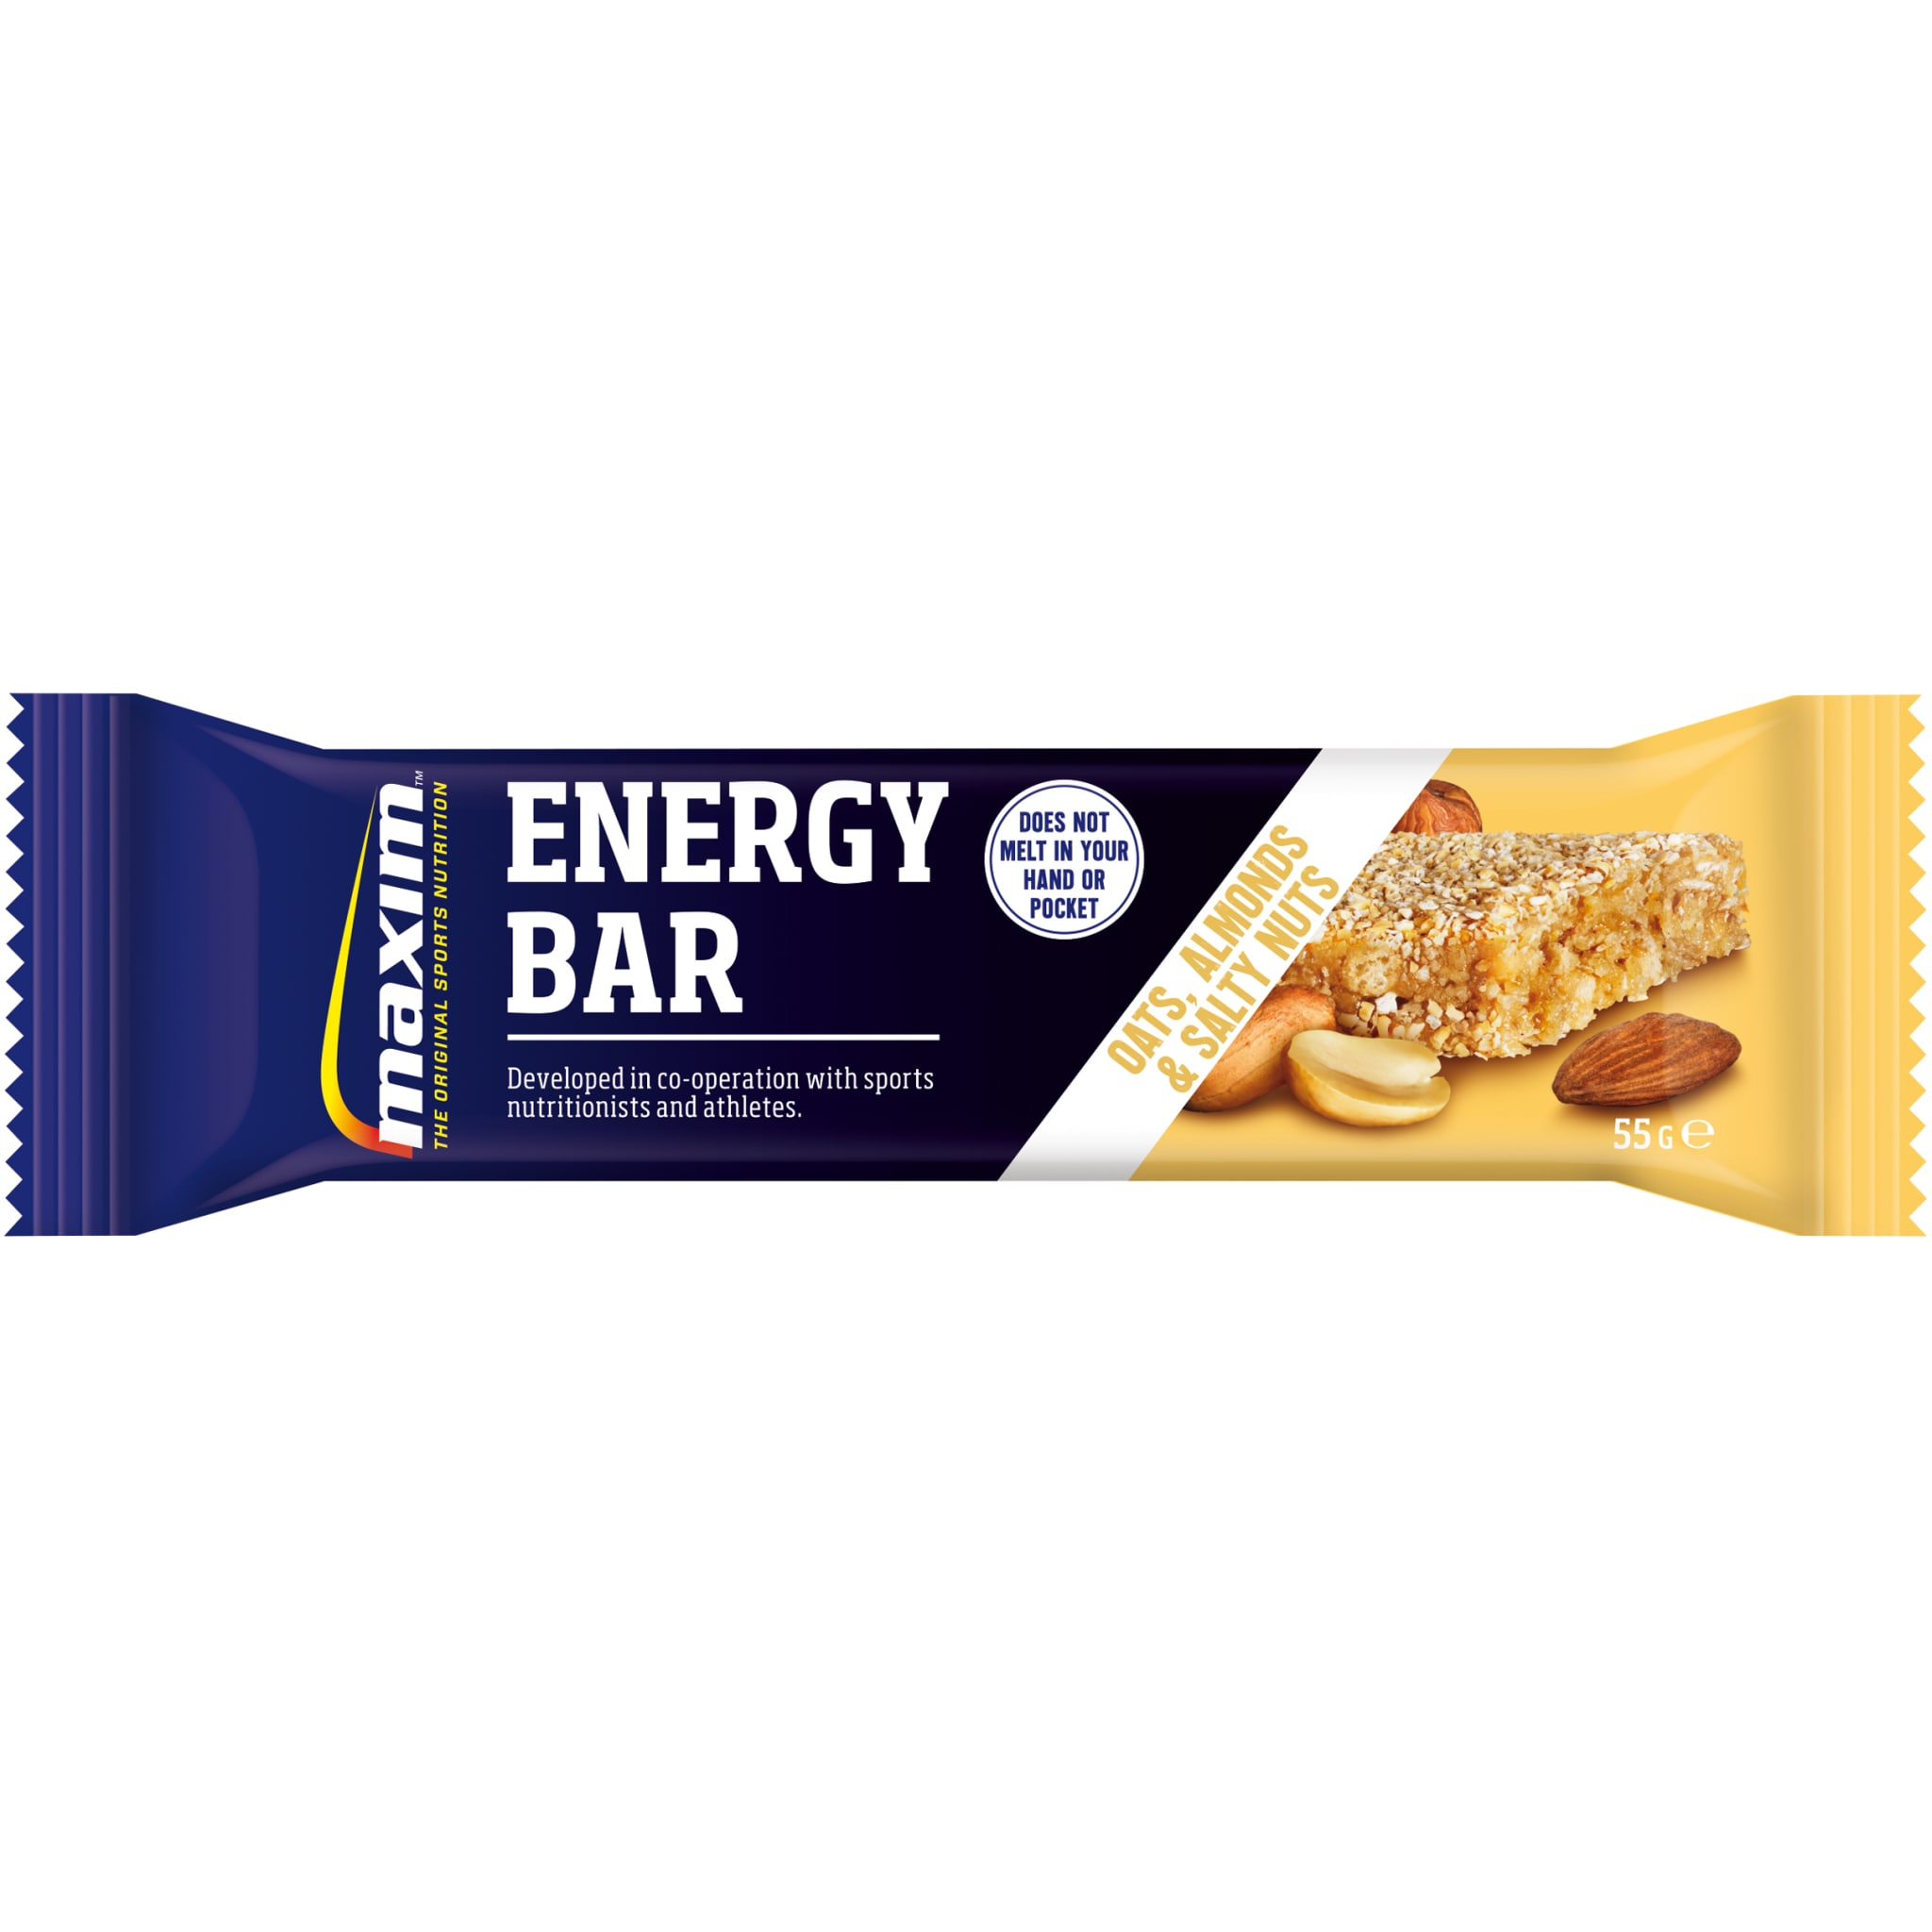 Energy Bar 55g Havre